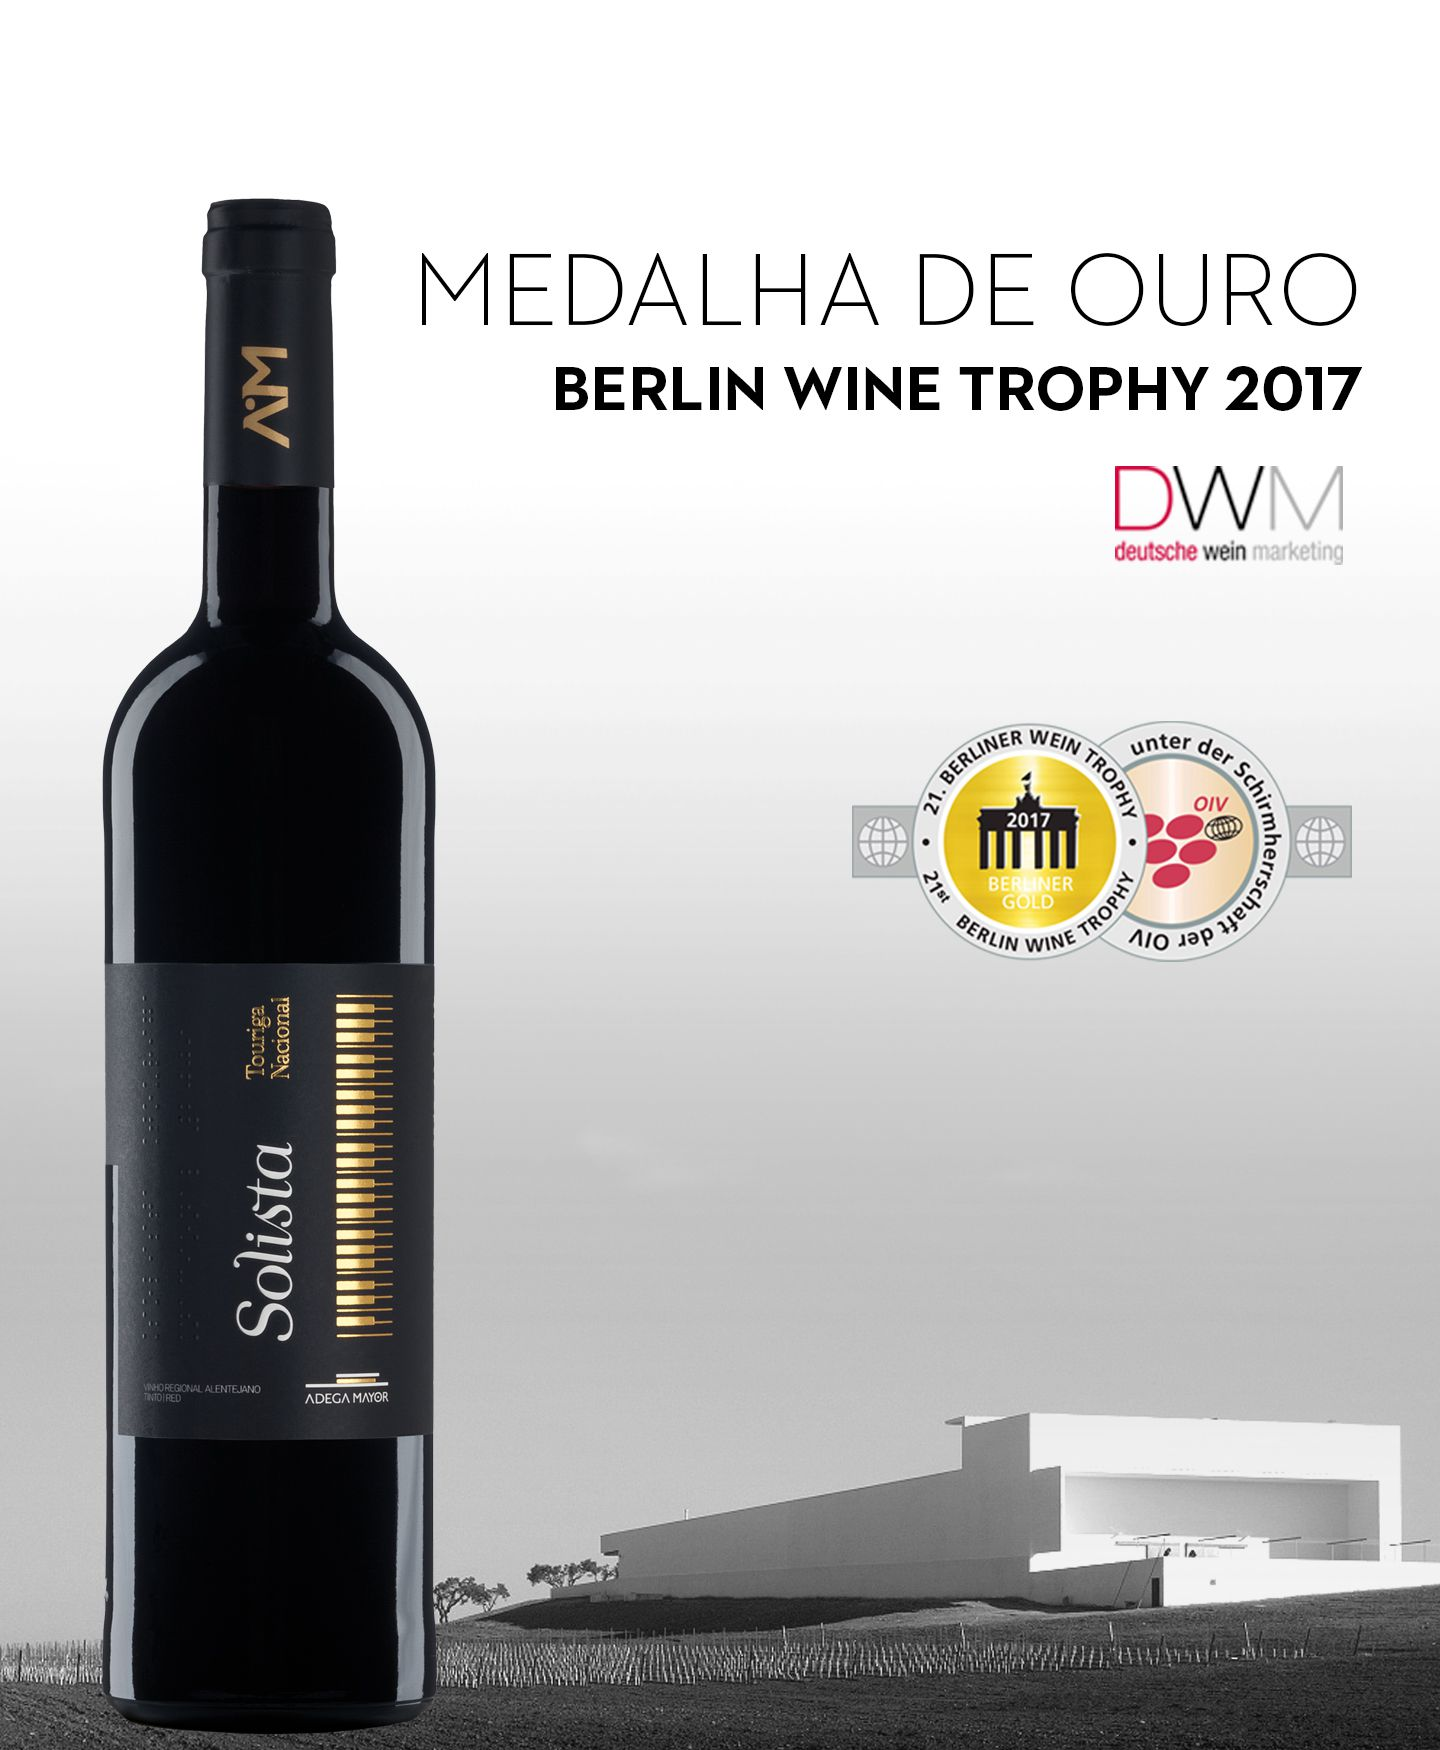 Solista Touriga Nacional 2014 distinguido no concurso Berlin Wine Trophy